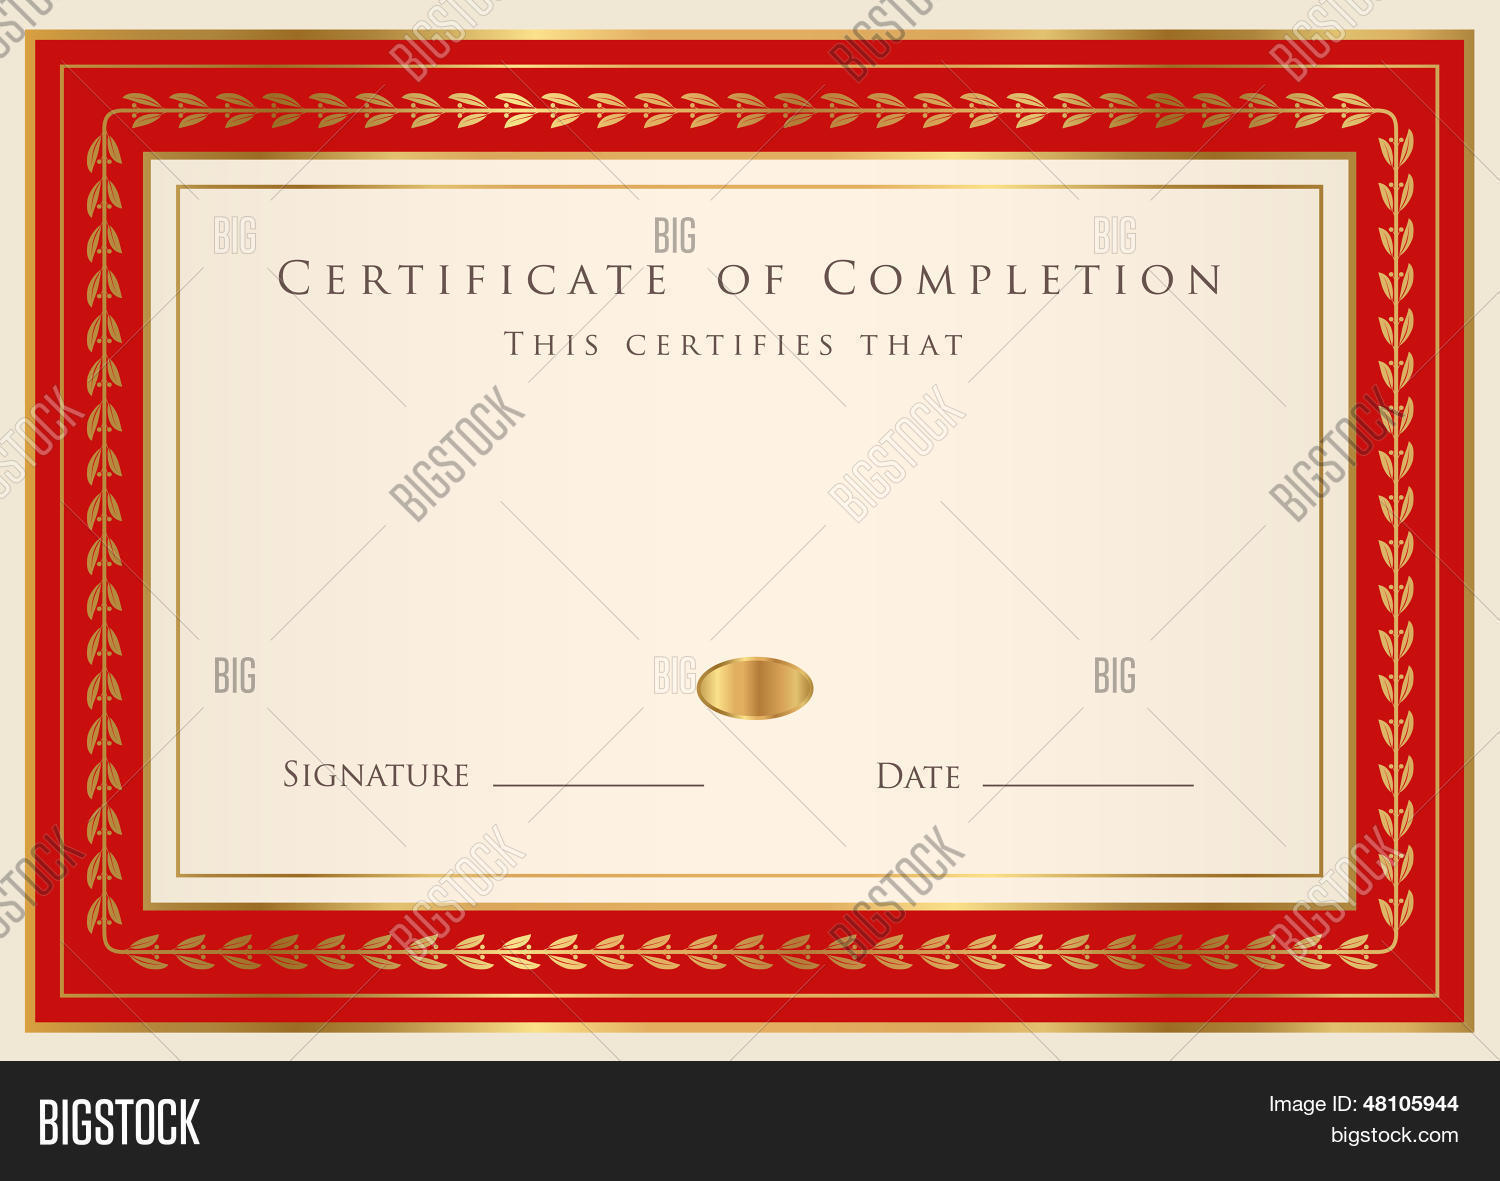 Blue Certificate of completion template or sample background – Certificate of Completion Sample